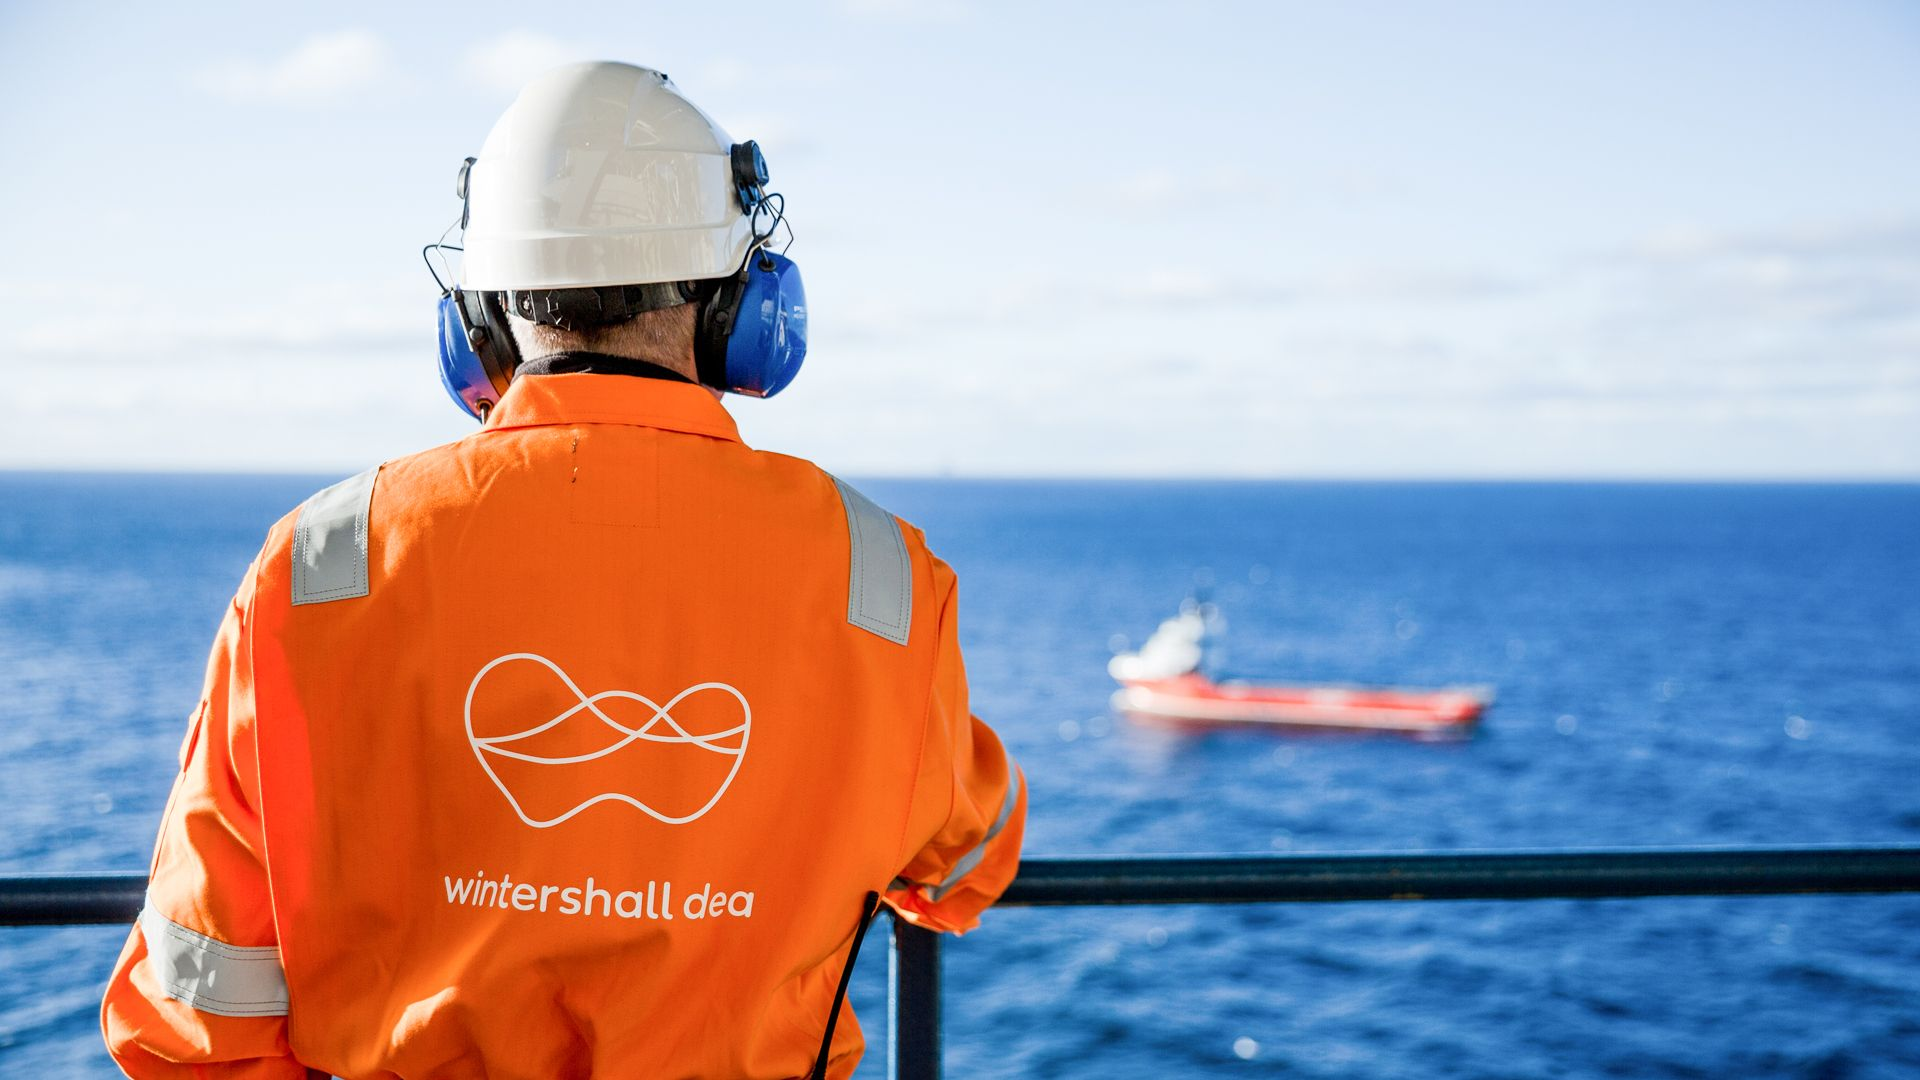 Wintershall Dea employee on a platform